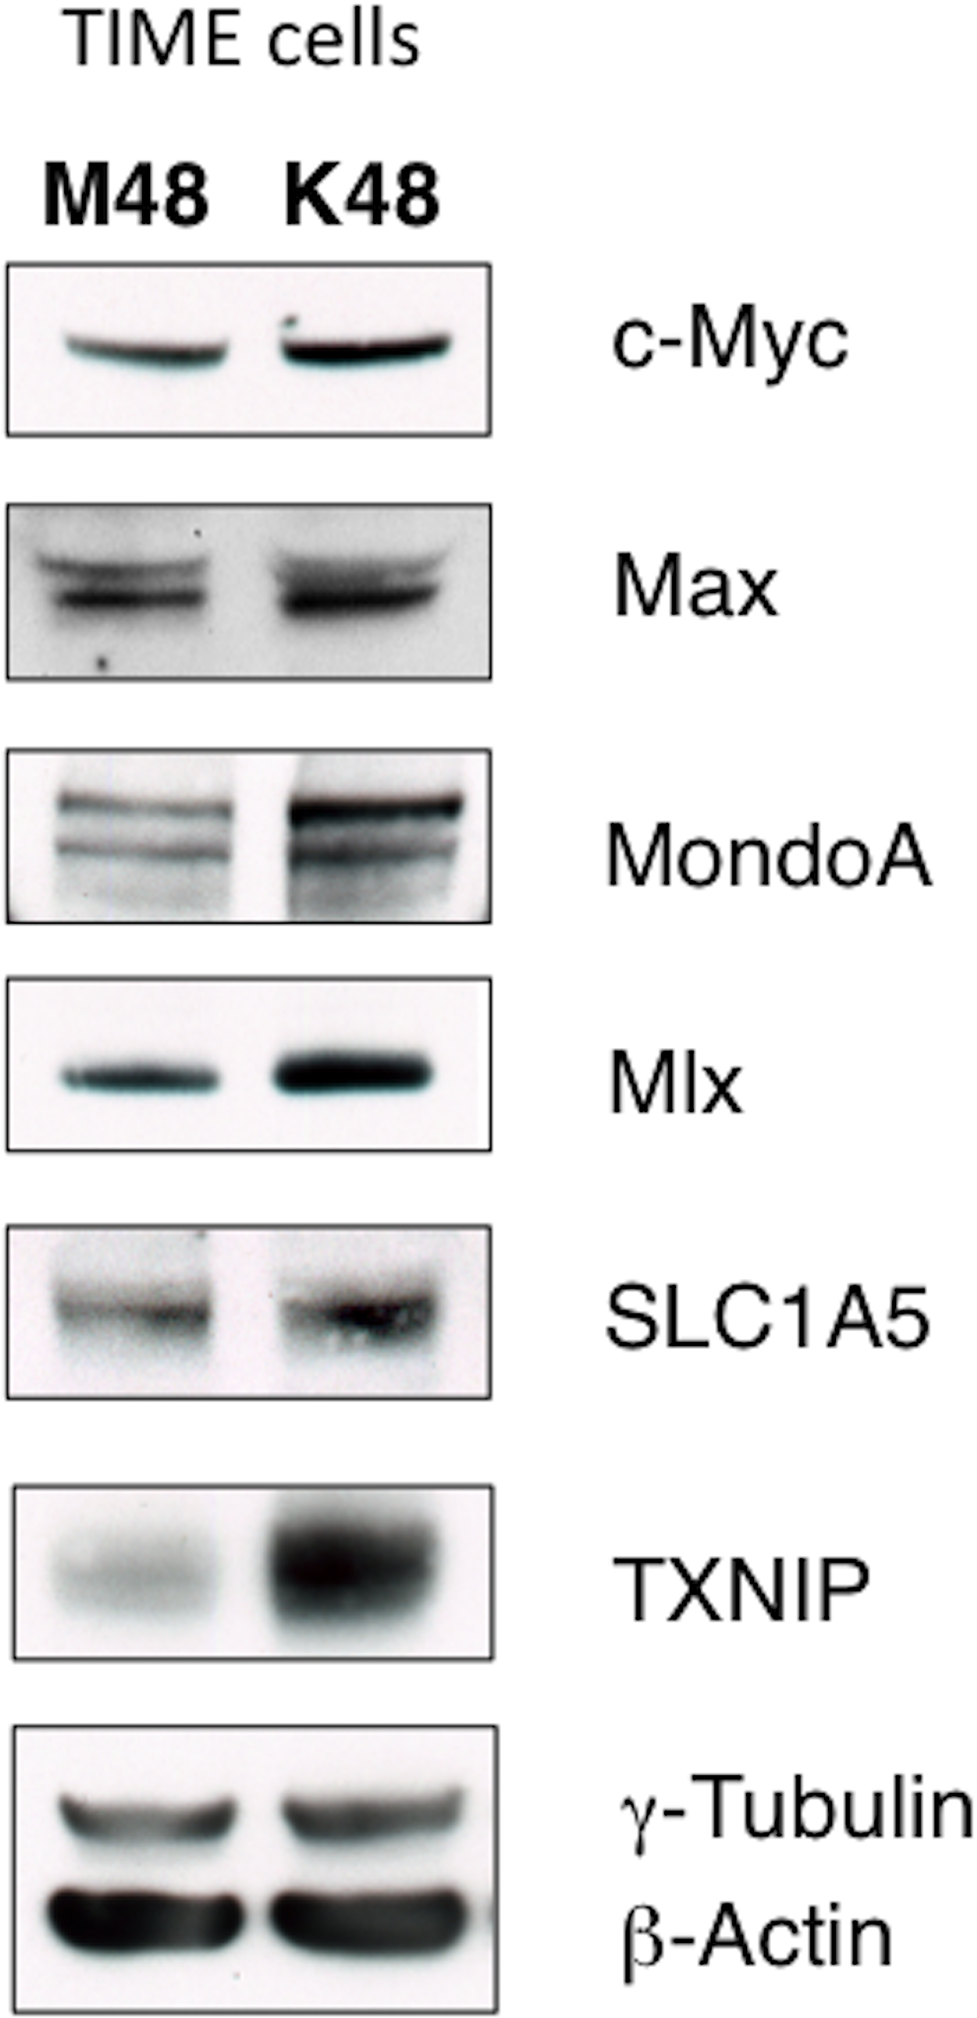 KSHV infection of endothelial cells increases protein expression of the Myc/MondoA network and downstream targets, including the glutamine transporter SLC1A5.